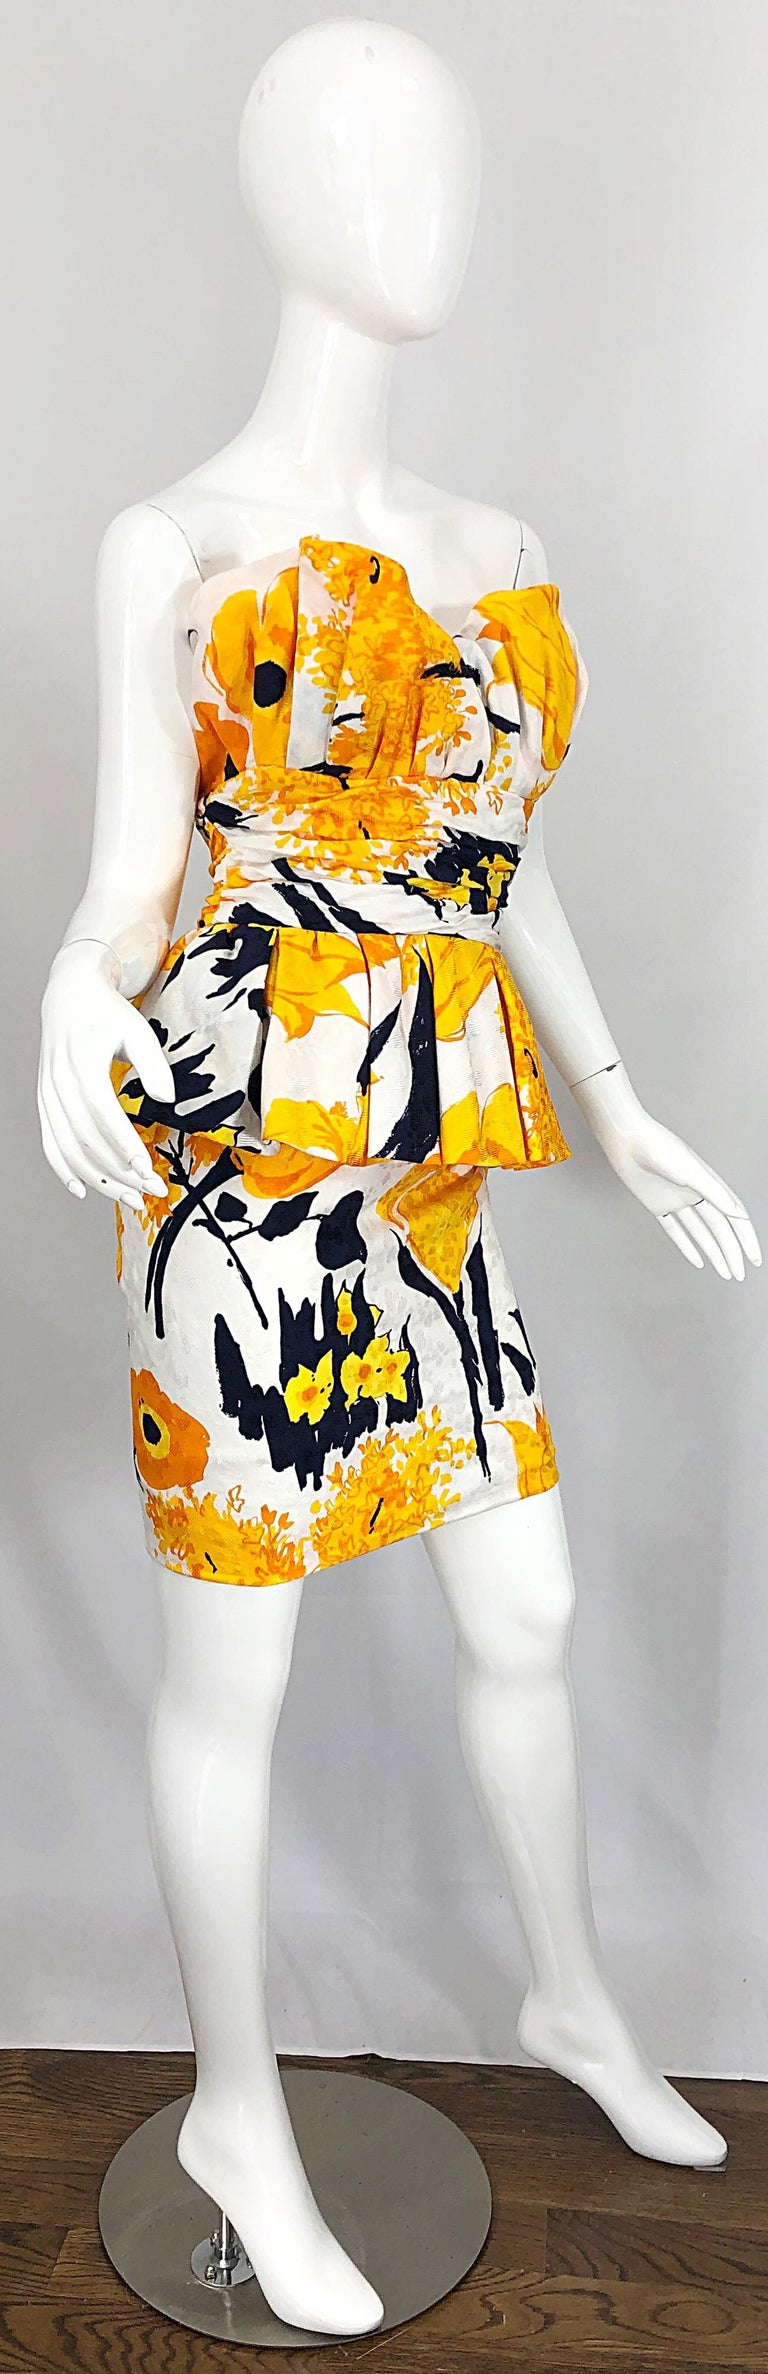 Avant Garde 1980s Amen Wardy Abstract Flower Print Vintage 80s Strapless Dress For Sale 6